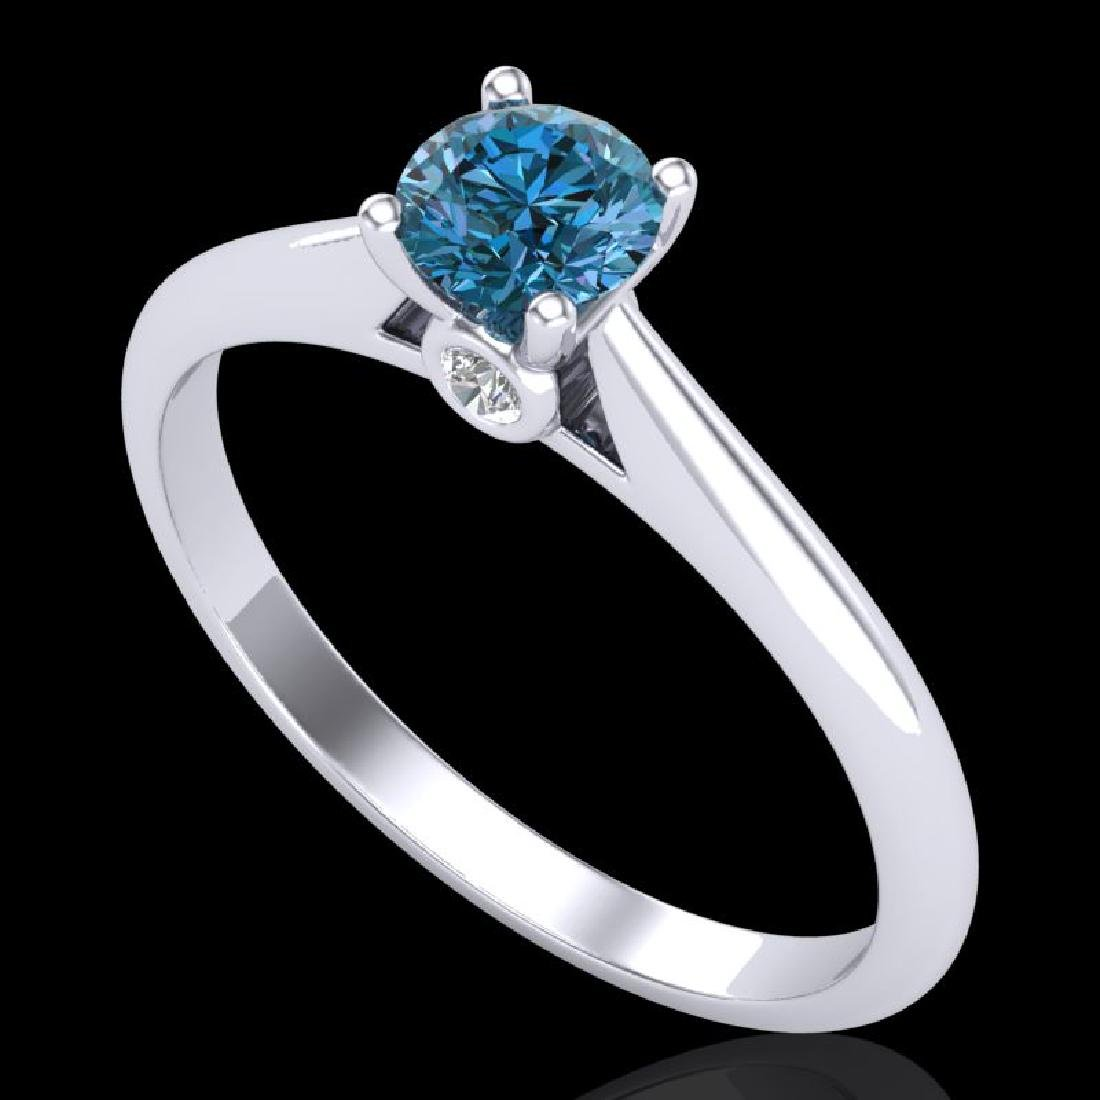 0.40 CTW Intense Blue Diamond Solitaire Engagement Art